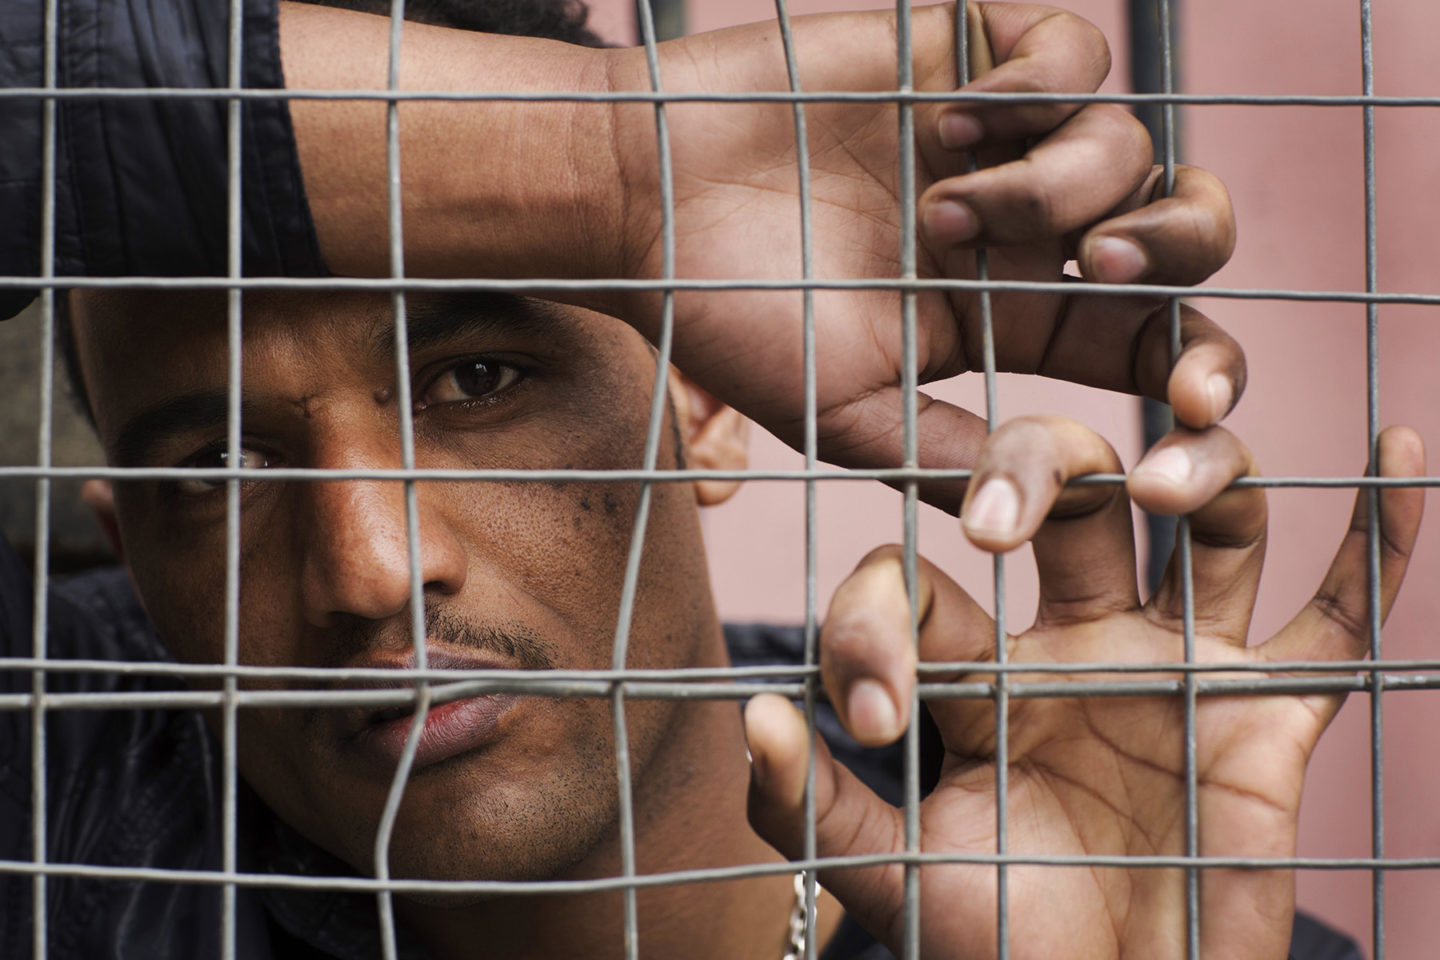 Eritrean refugee in Glasgow behind a fence